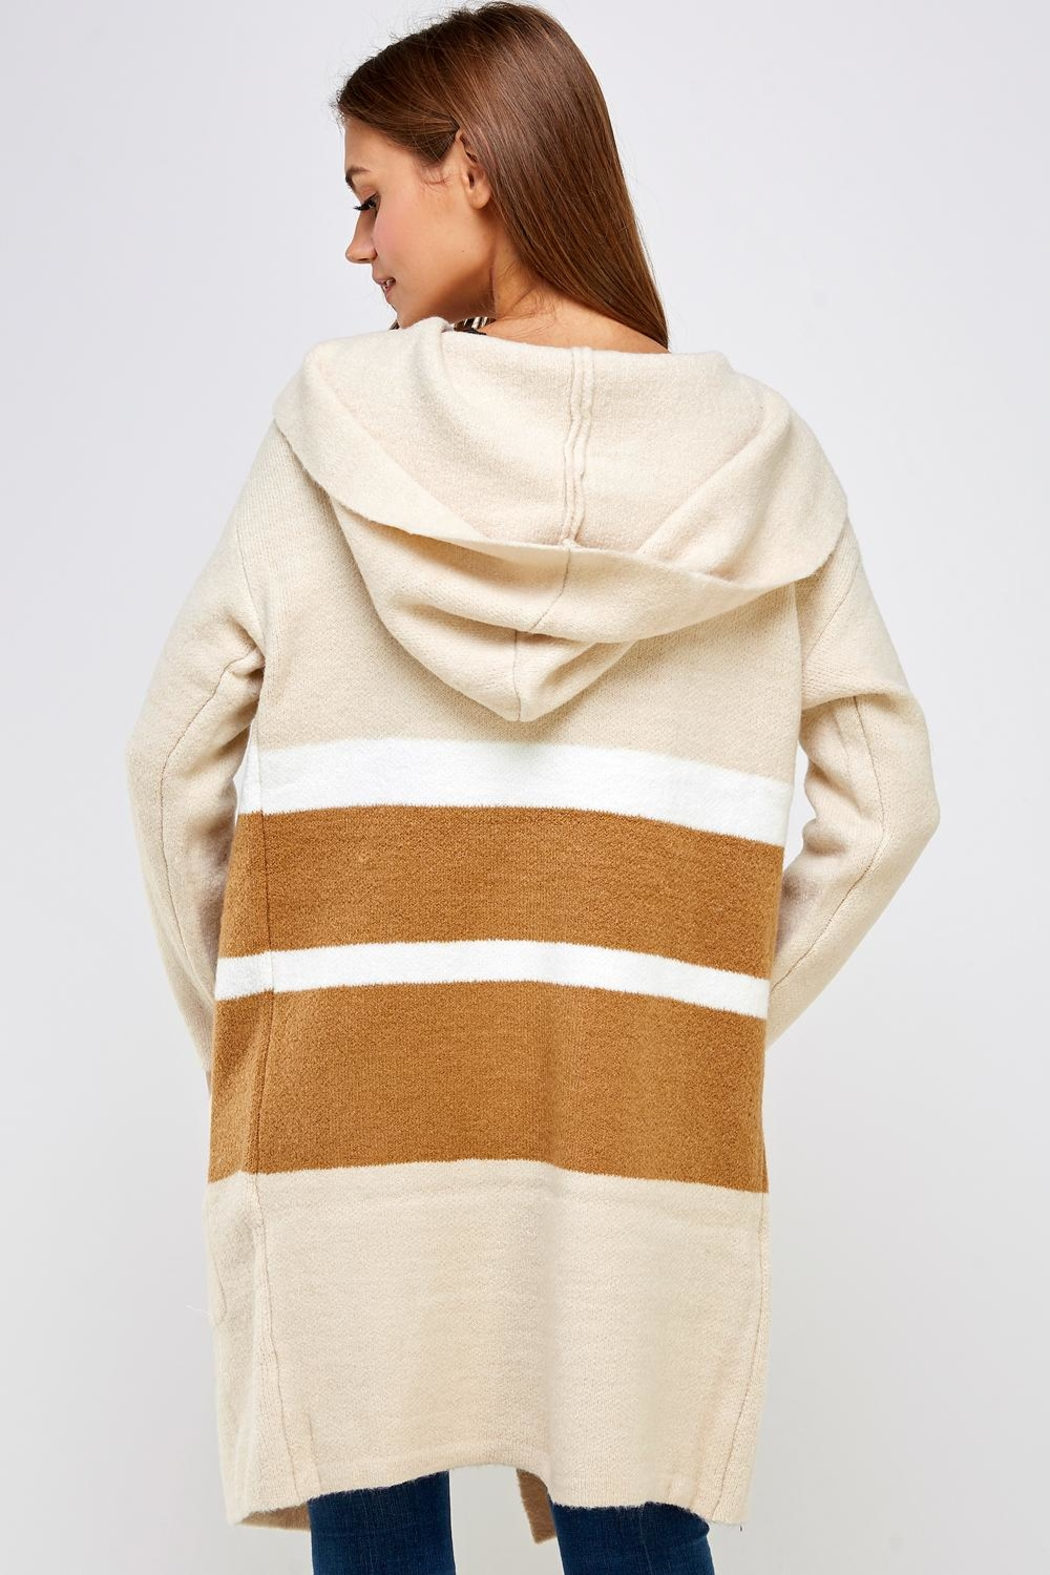 dress forum Long Colorblock Sweater - Back Cropped Image